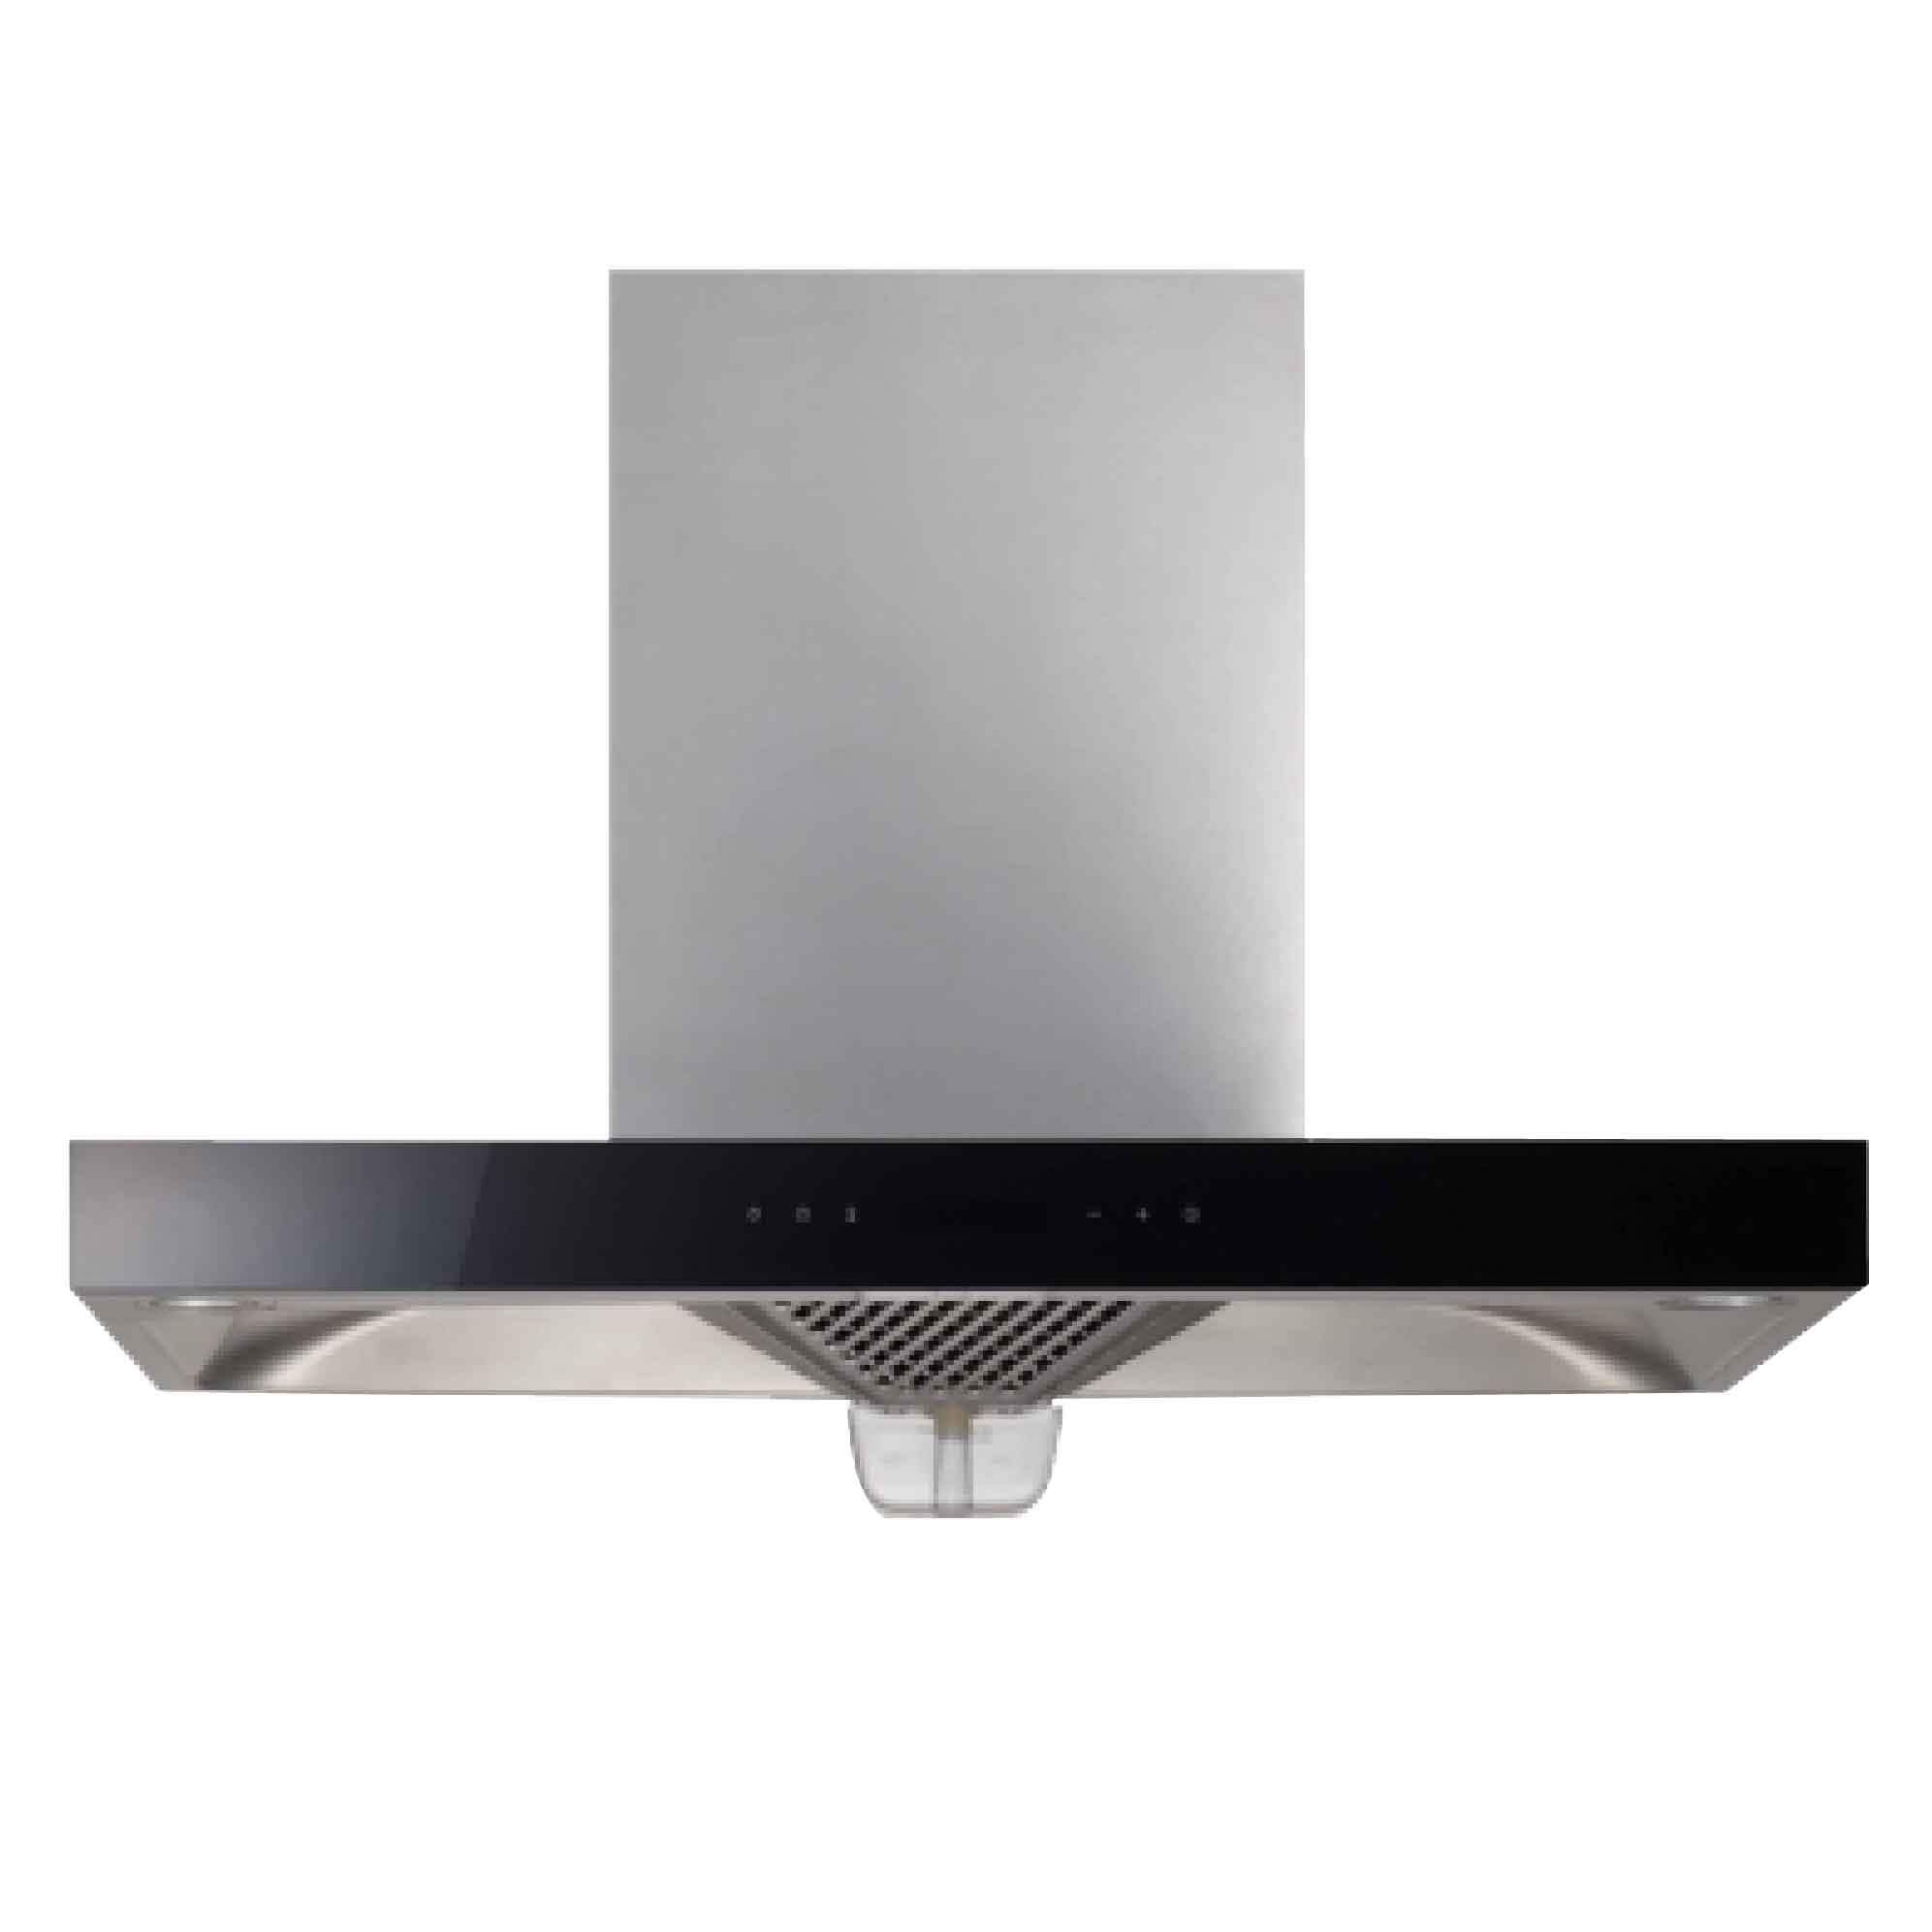 kitchen hood table with high chairs panasonic fv 9hsdm1nb f end 5 2 2020 6 56 pm for size 310 610 sq ft